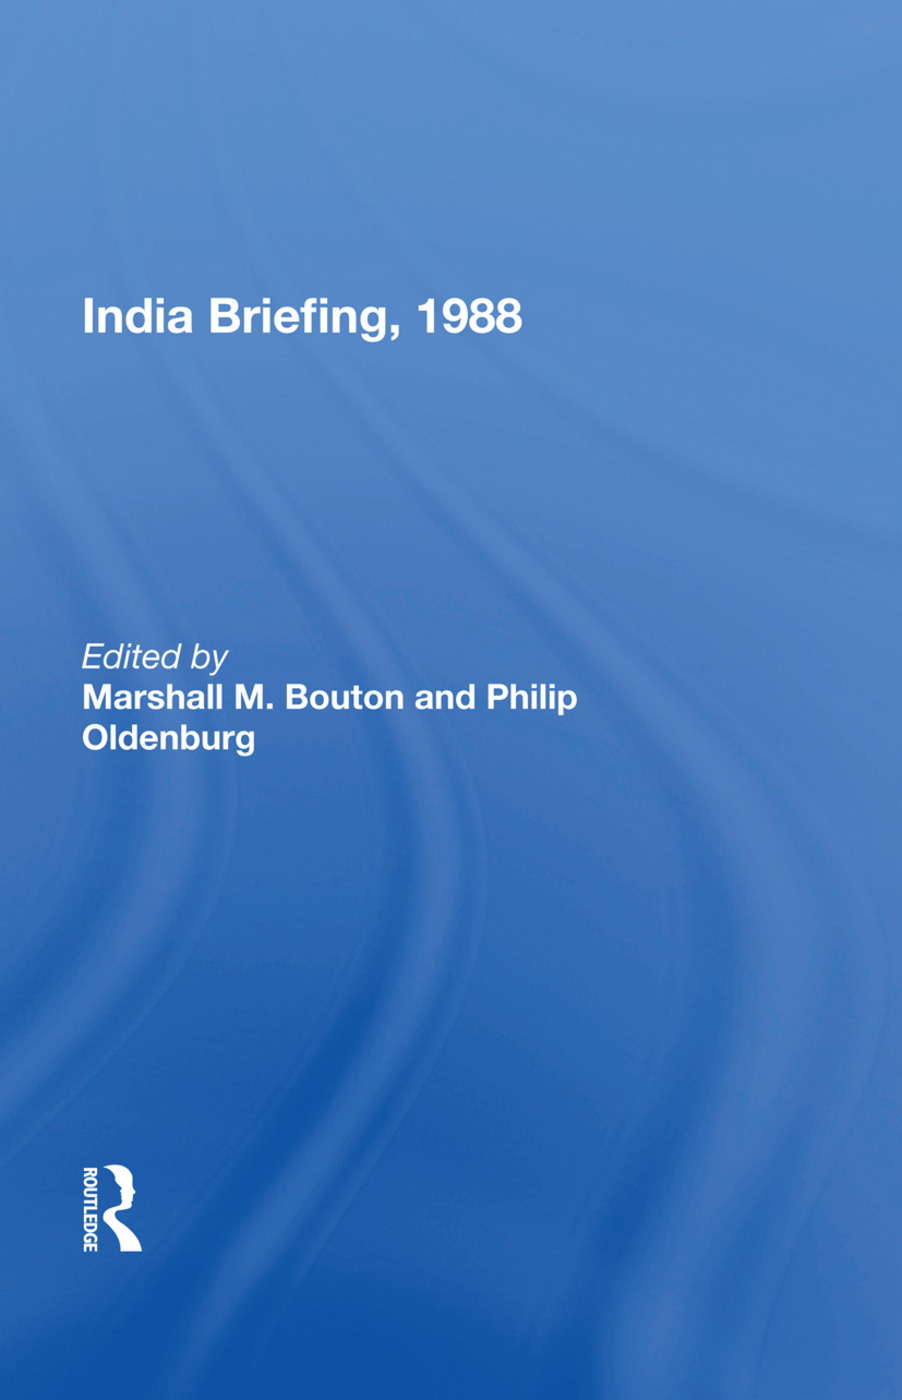 India Briefing, 1988 book cover